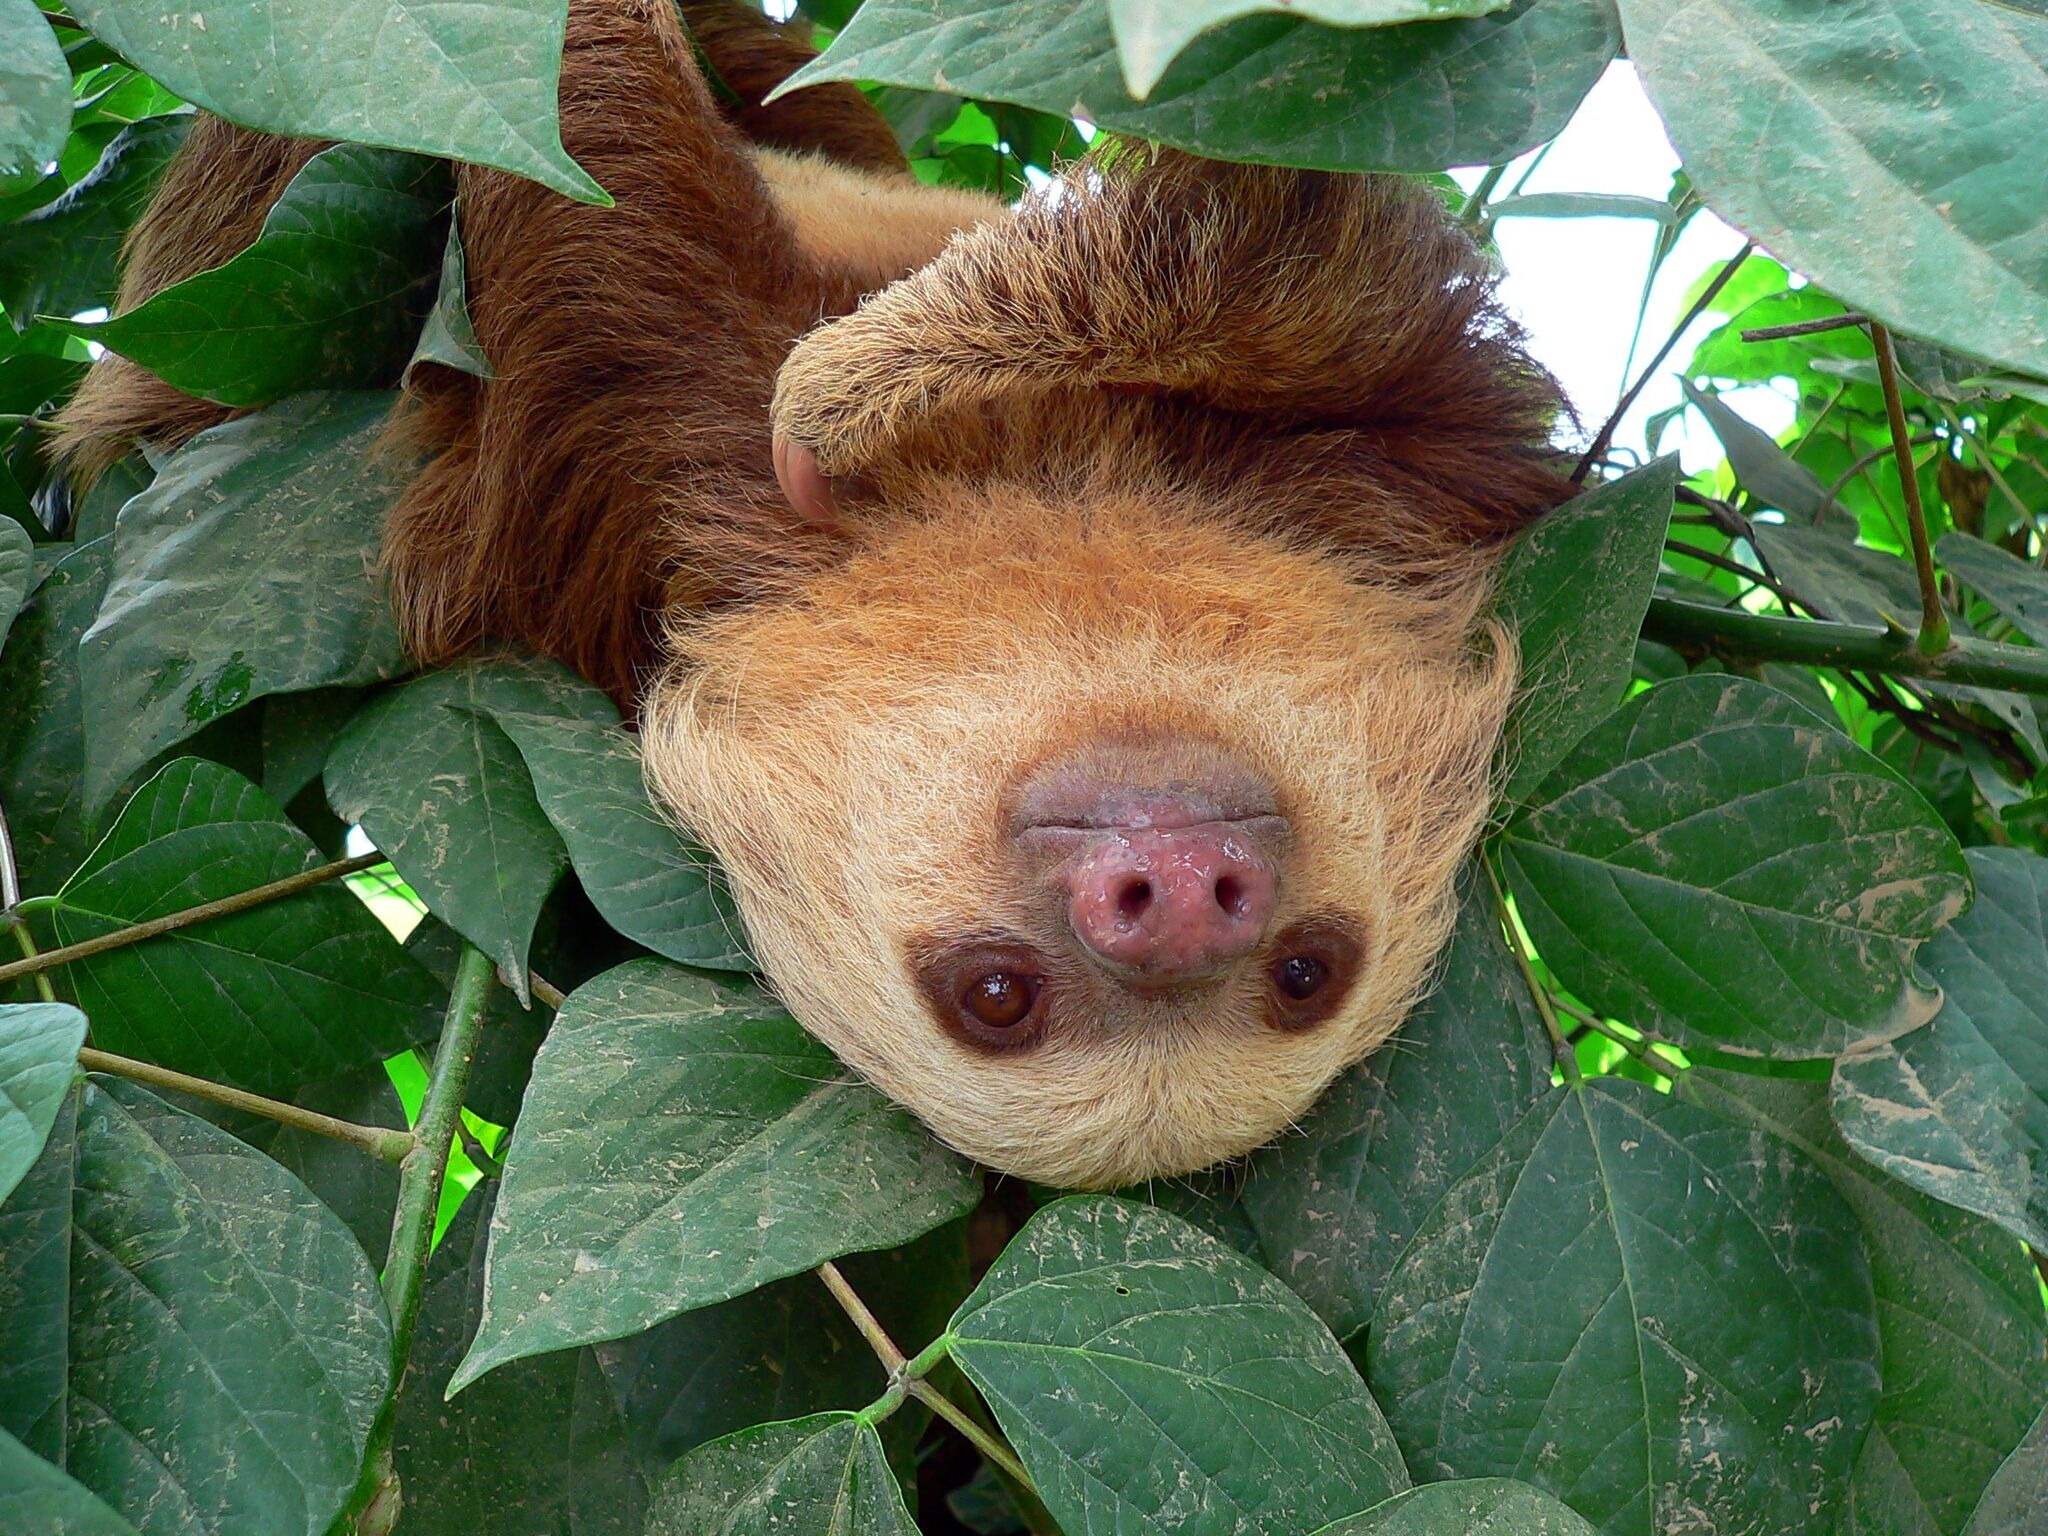 sloth hanging from a tree in the rain forest of costa rica